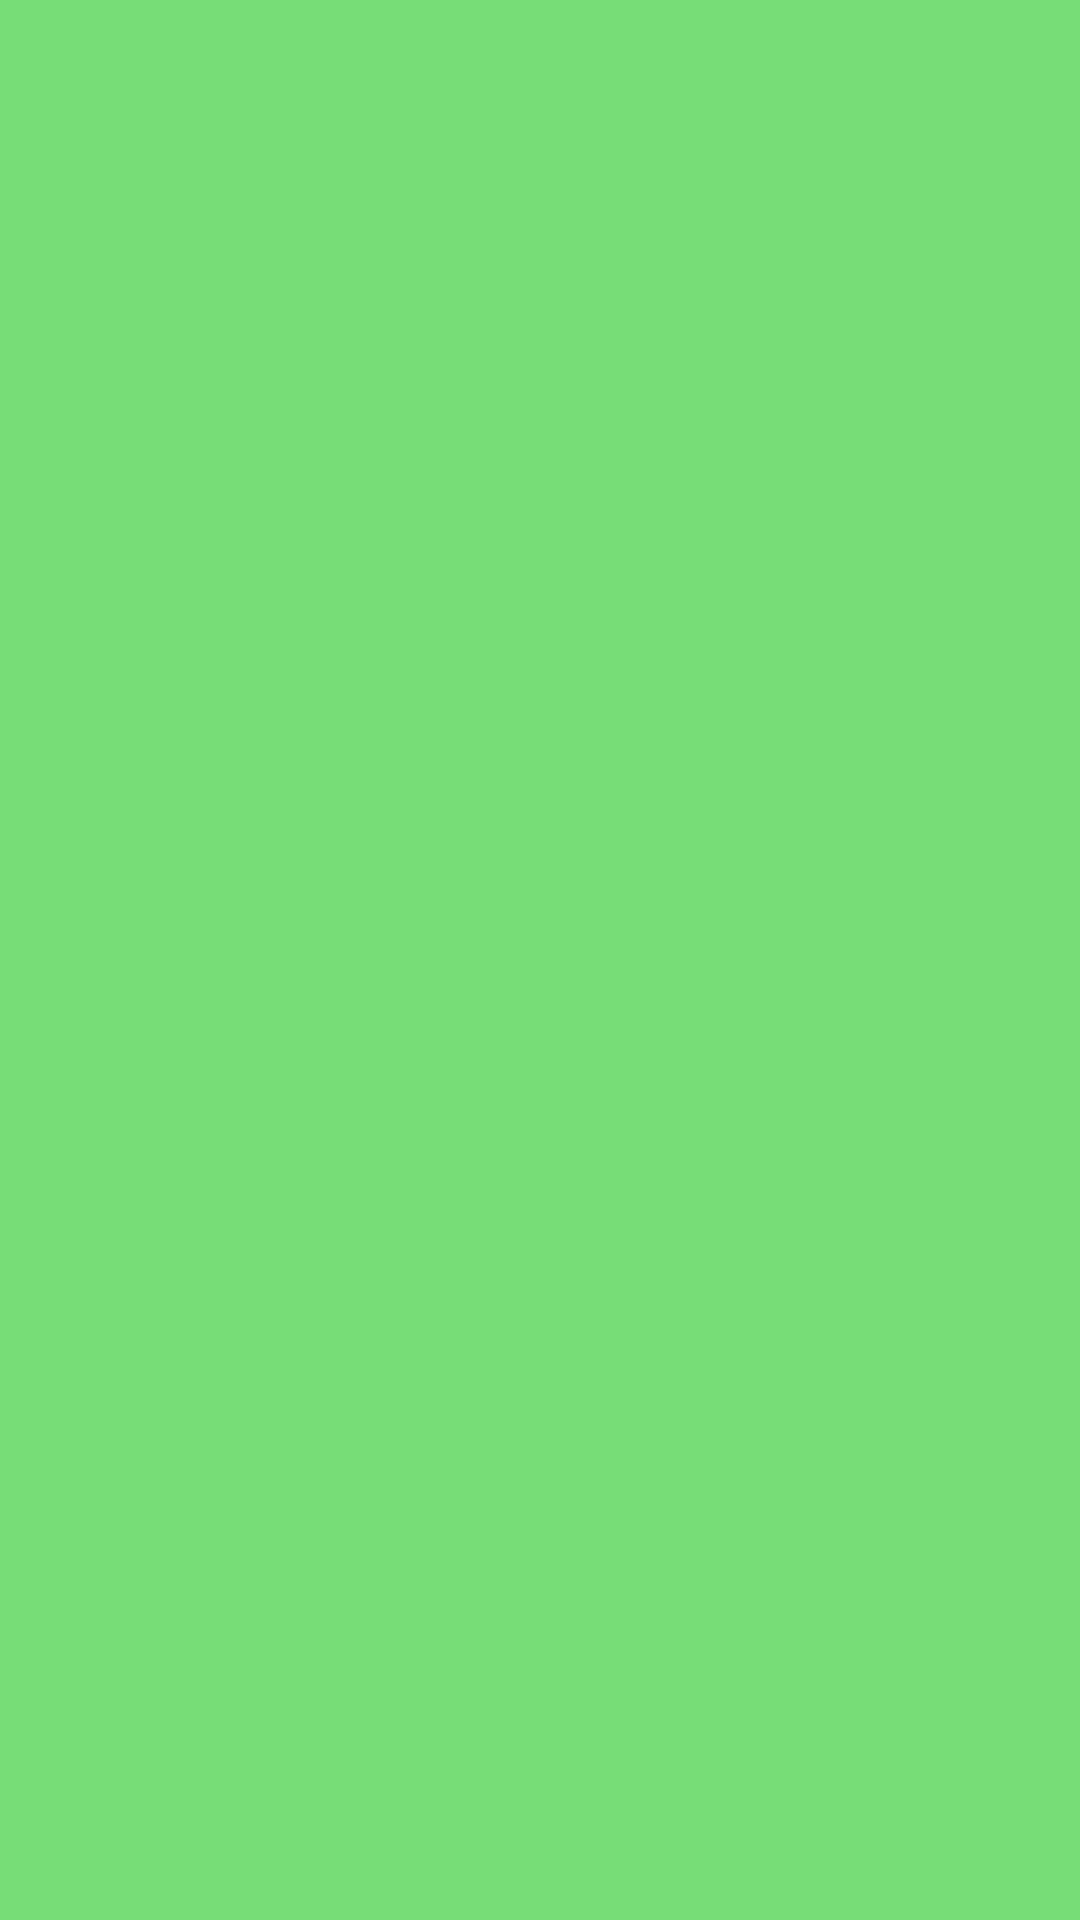 1080x1920 Pastel Green Solid Color Background